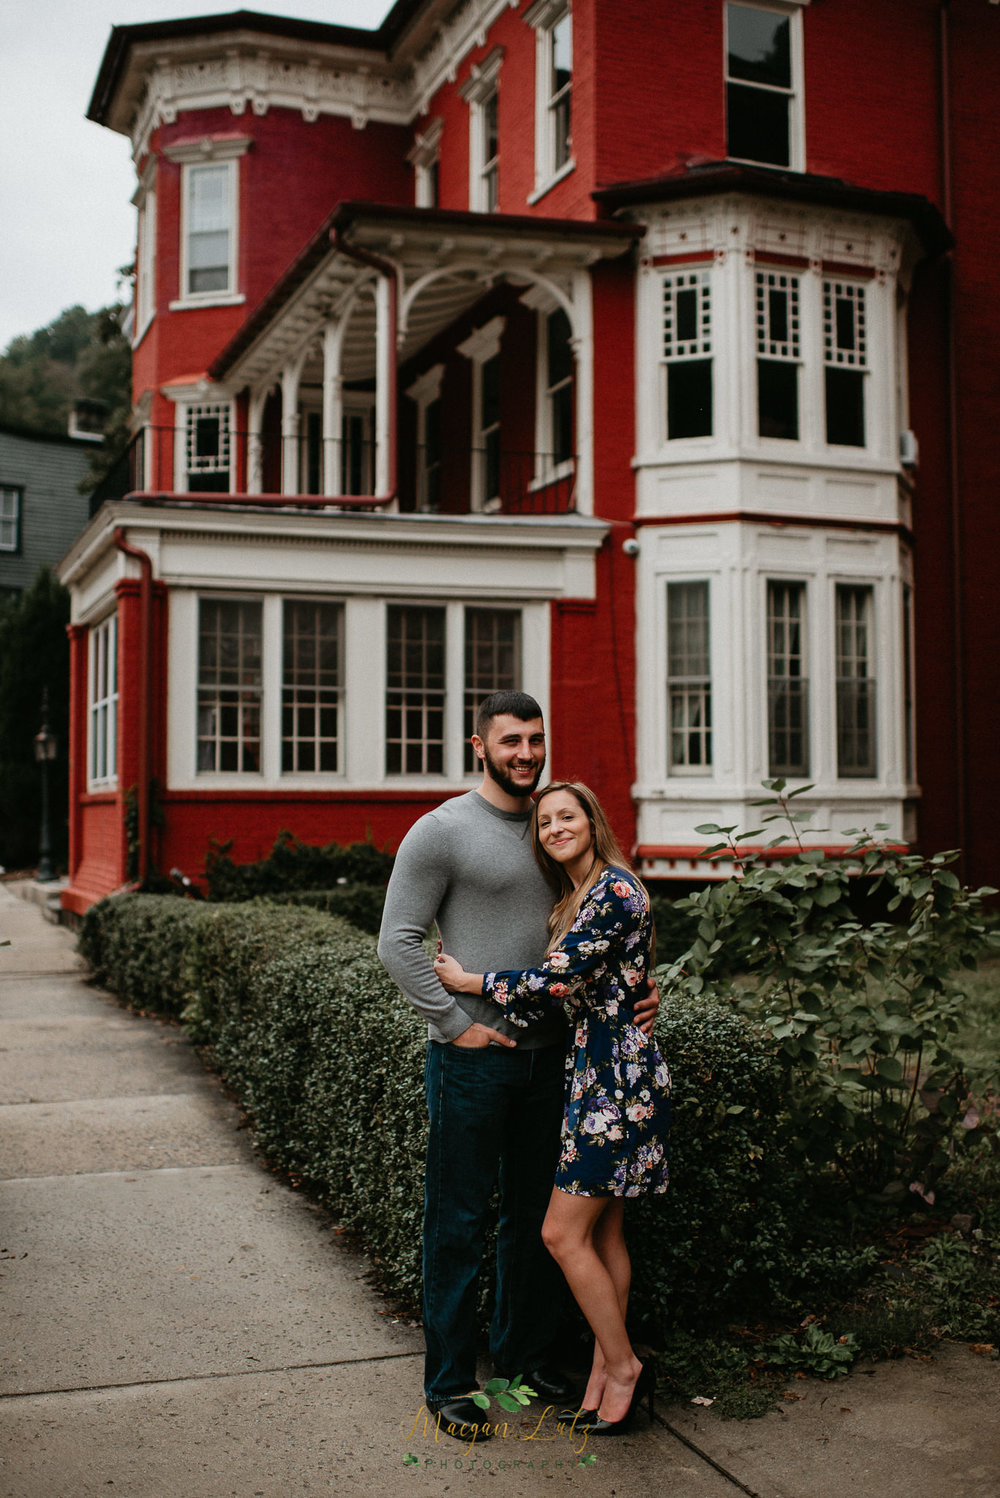 NEPA-Engagement-Session-at-Jim-Thorpe-PA-6.jpg